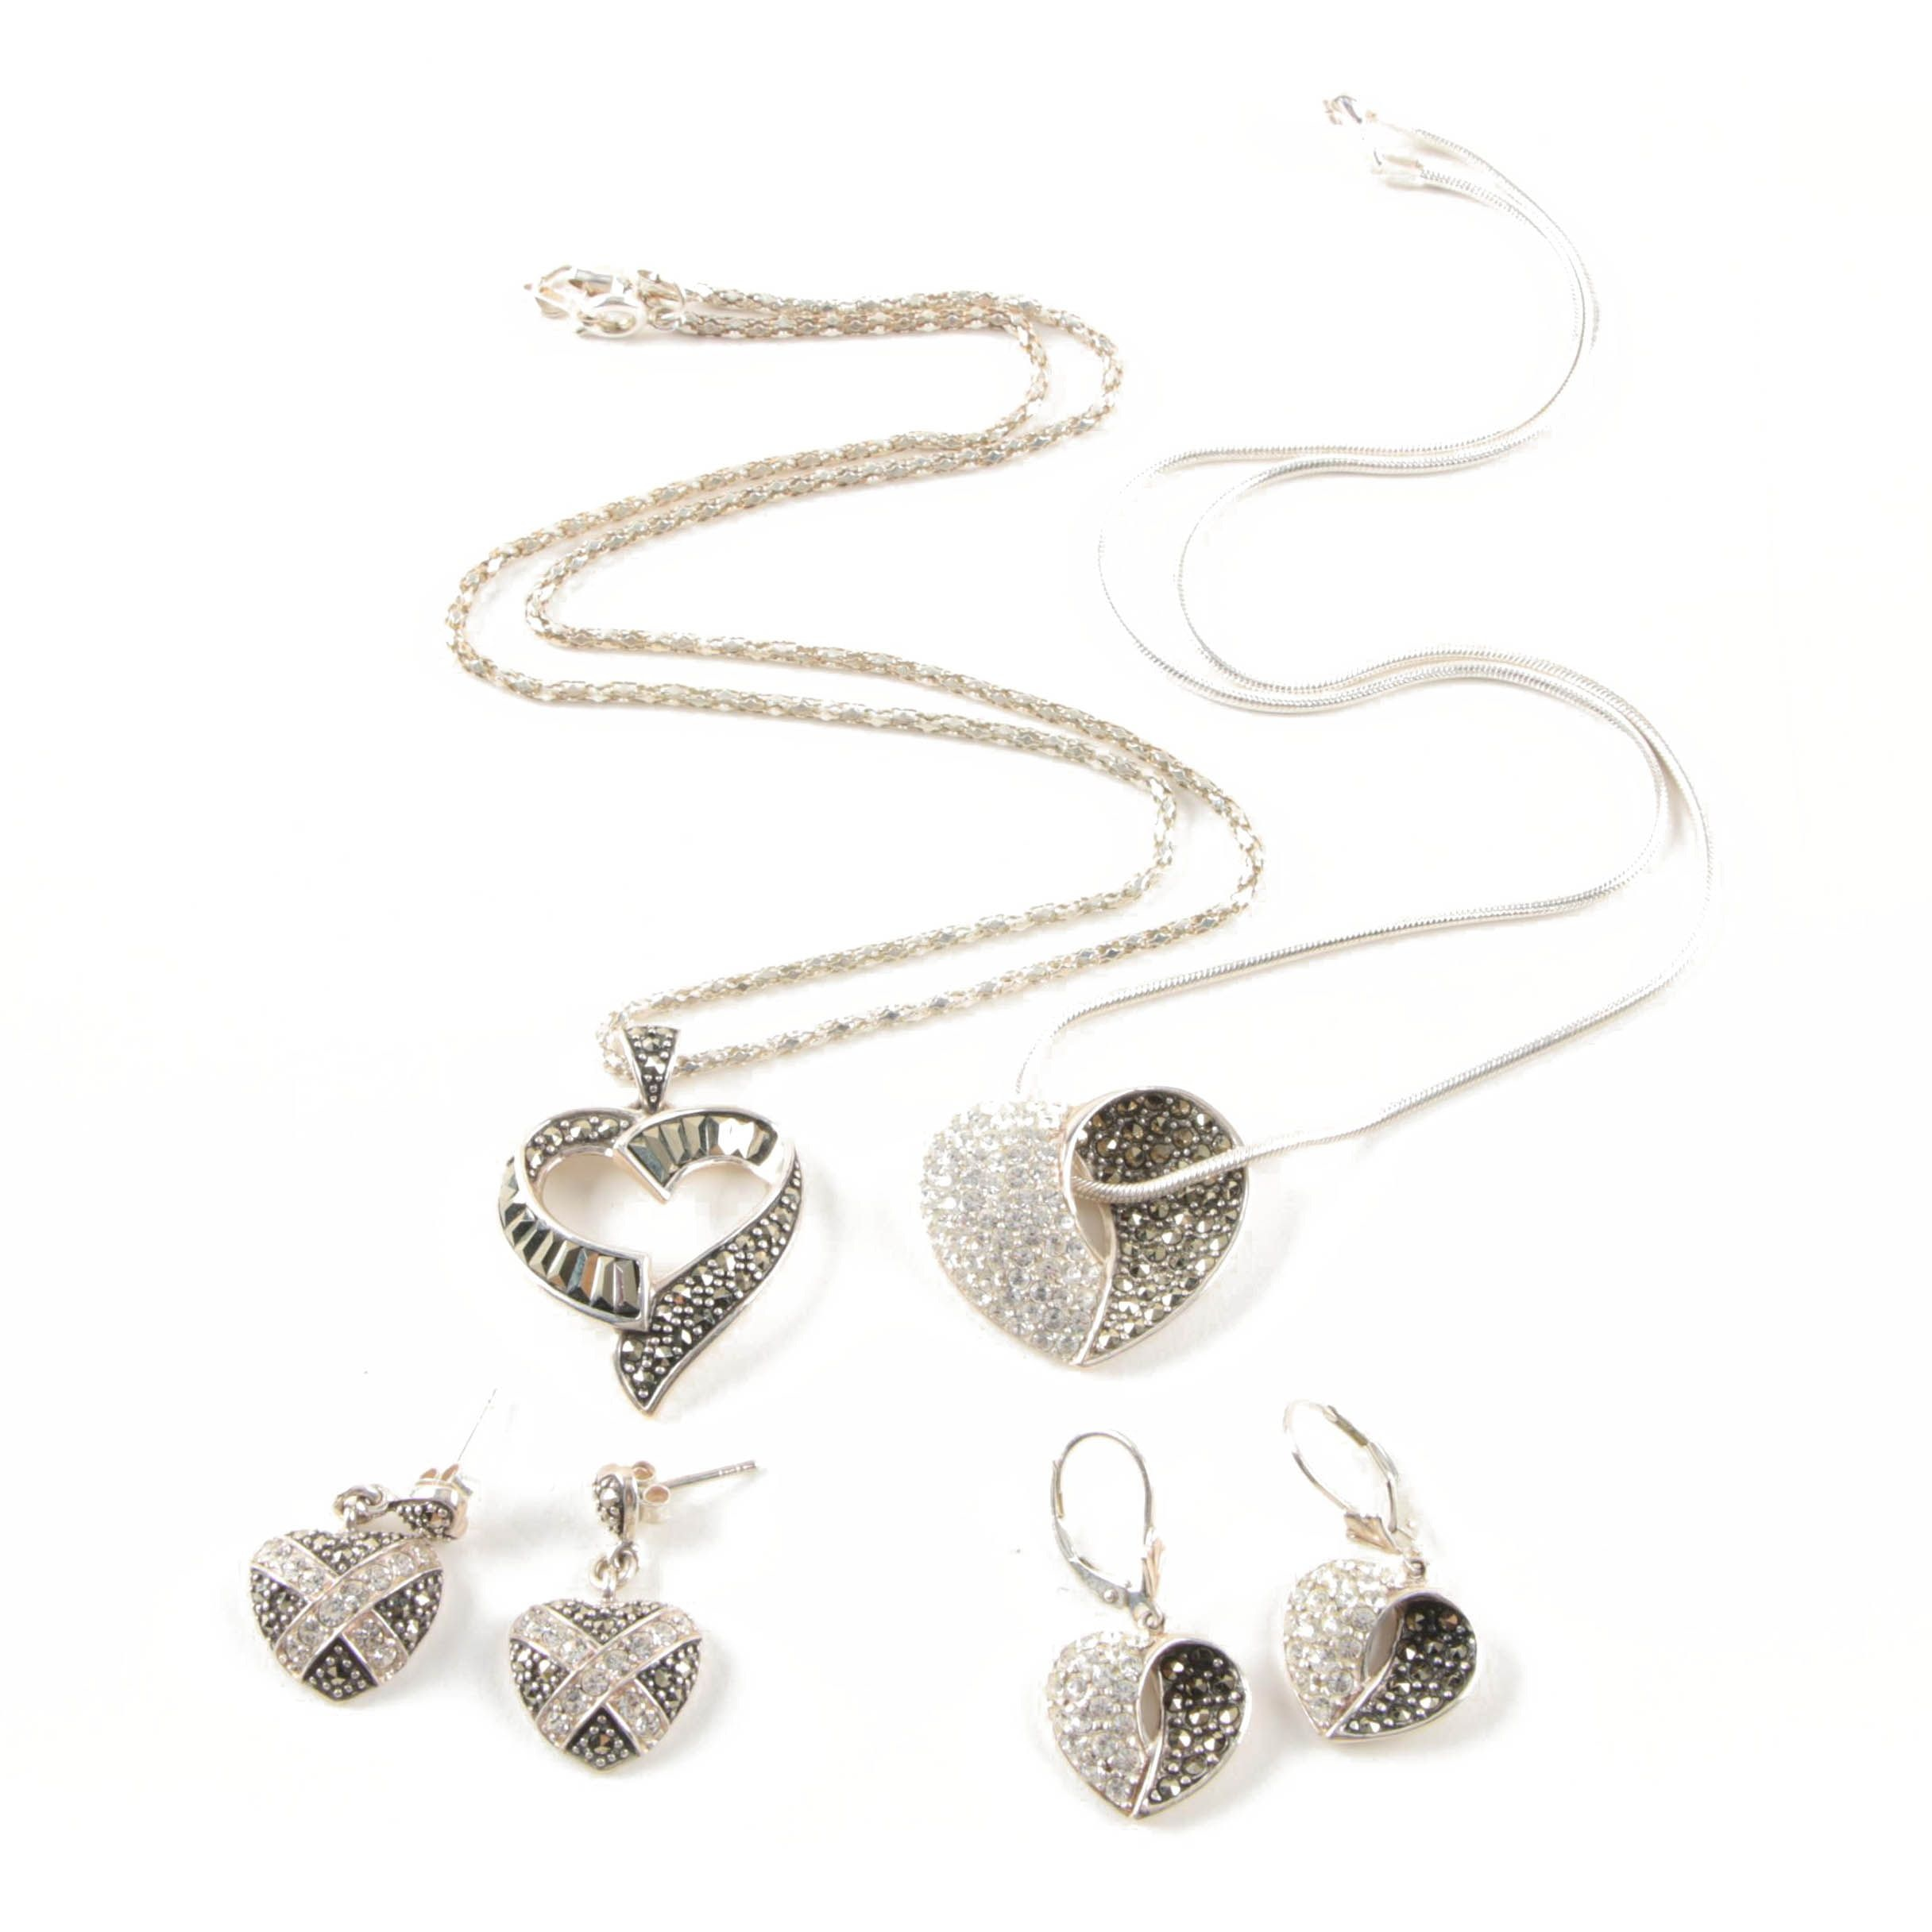 Sterling Silver Glass and Marcasite Necklaces and Earrings